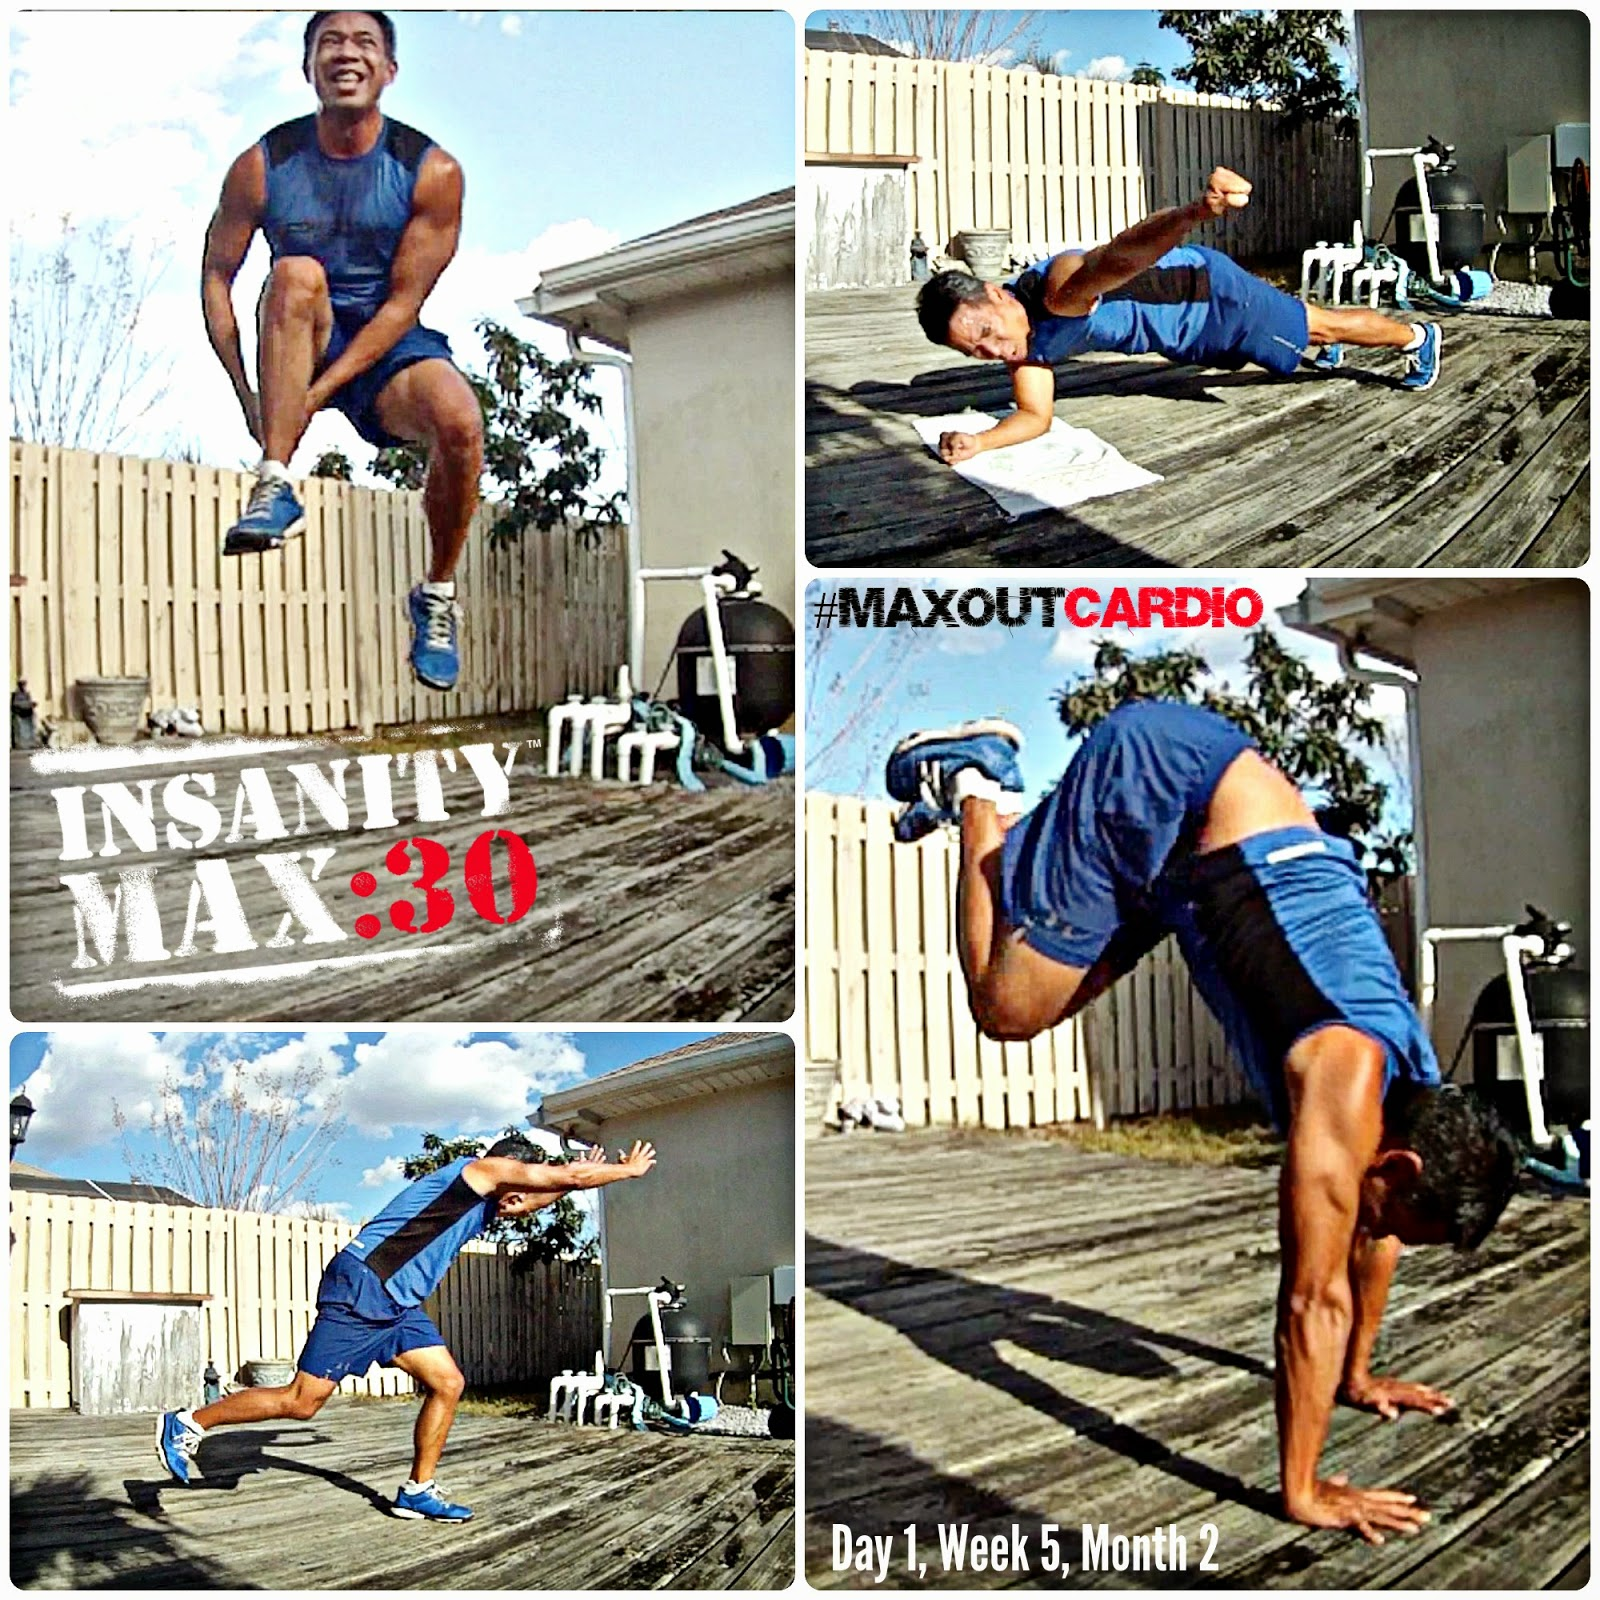 Insanity Max 30 - Max Out Cardio Workout - Insanity Max 30 Workout Sheets